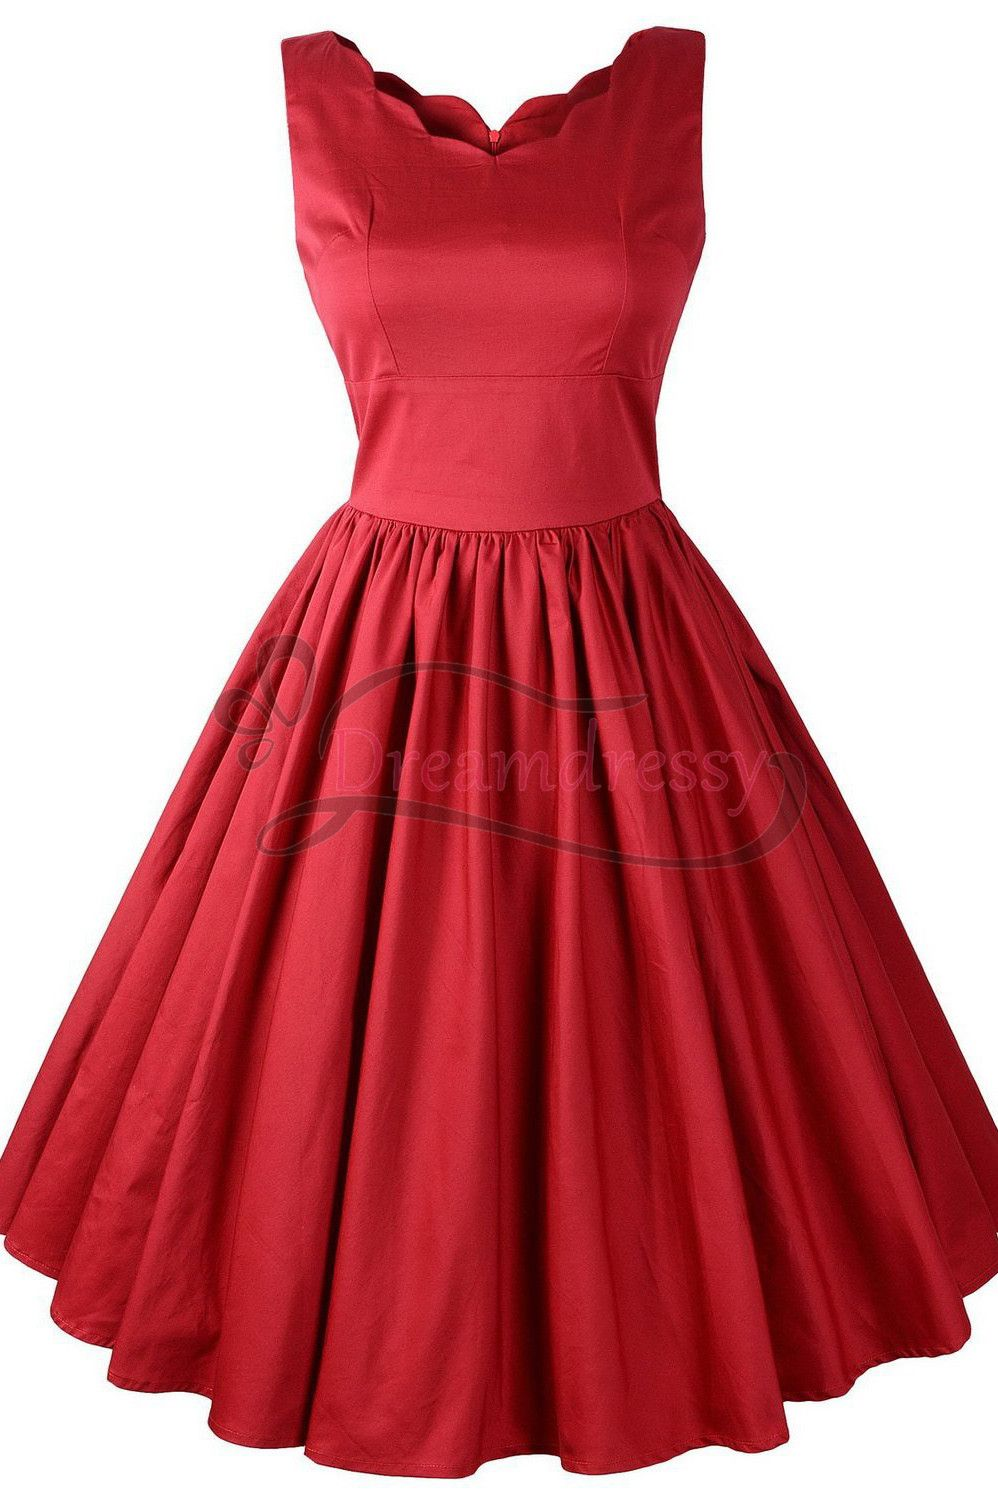 Simple aline short red dress yourself pinterest short red